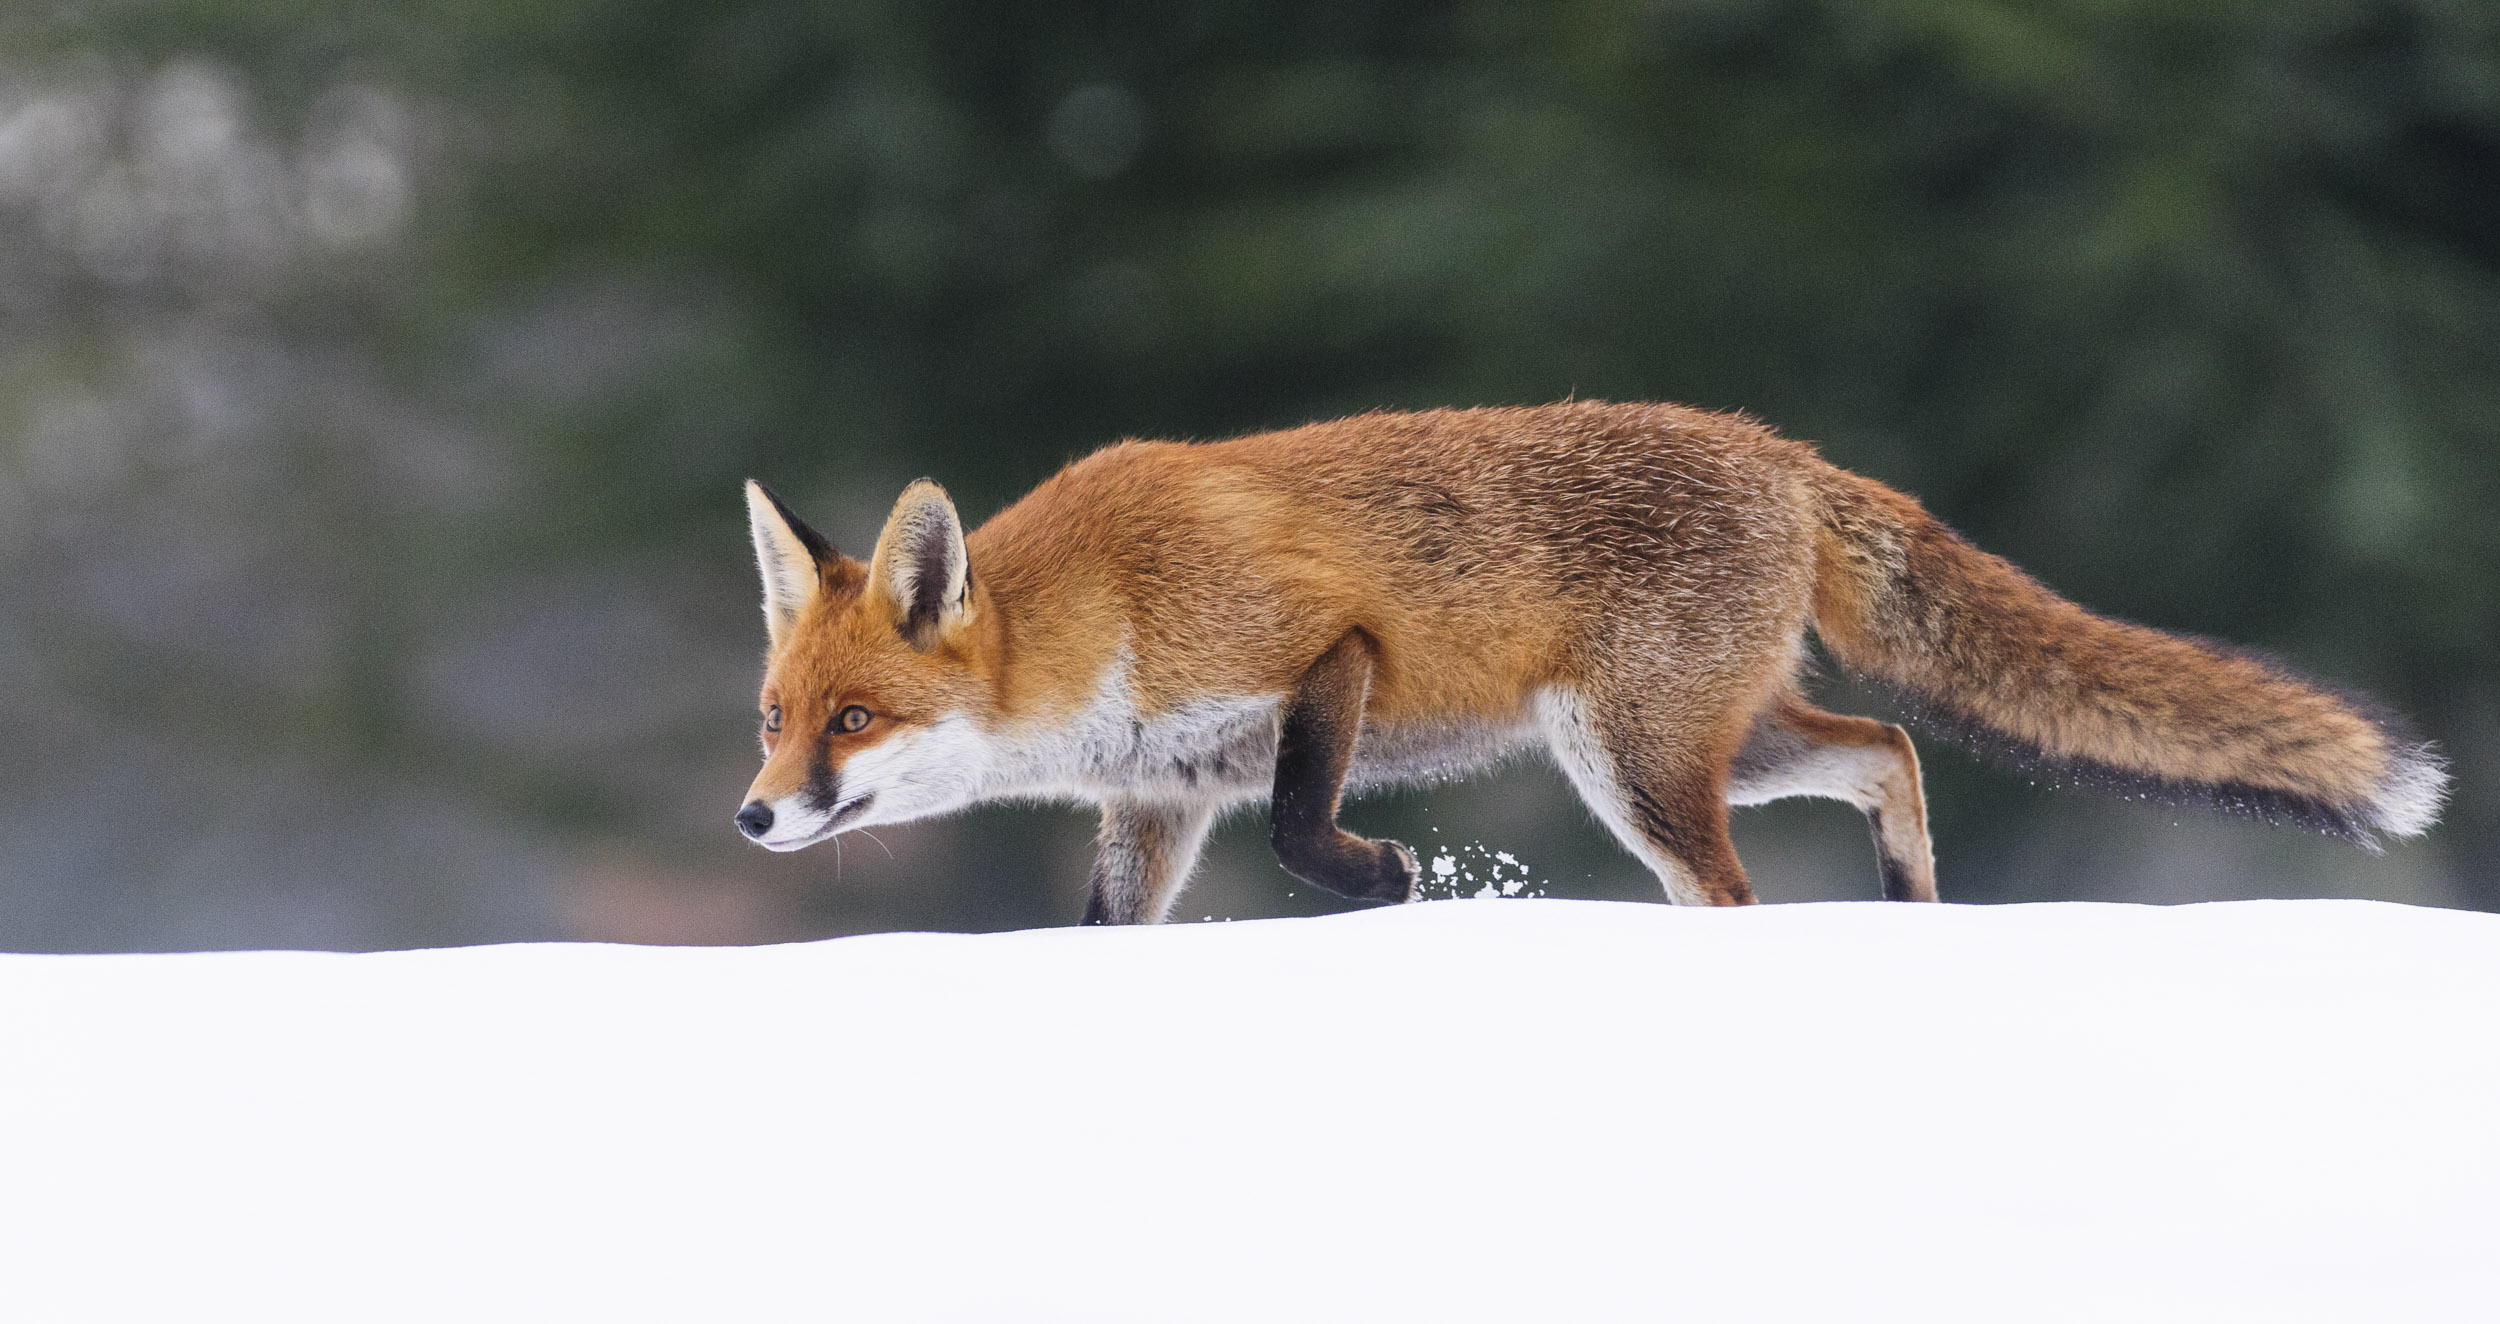 Red Fox (Vulpes vulpes), hunting in snow, London, 01/13. Cropped